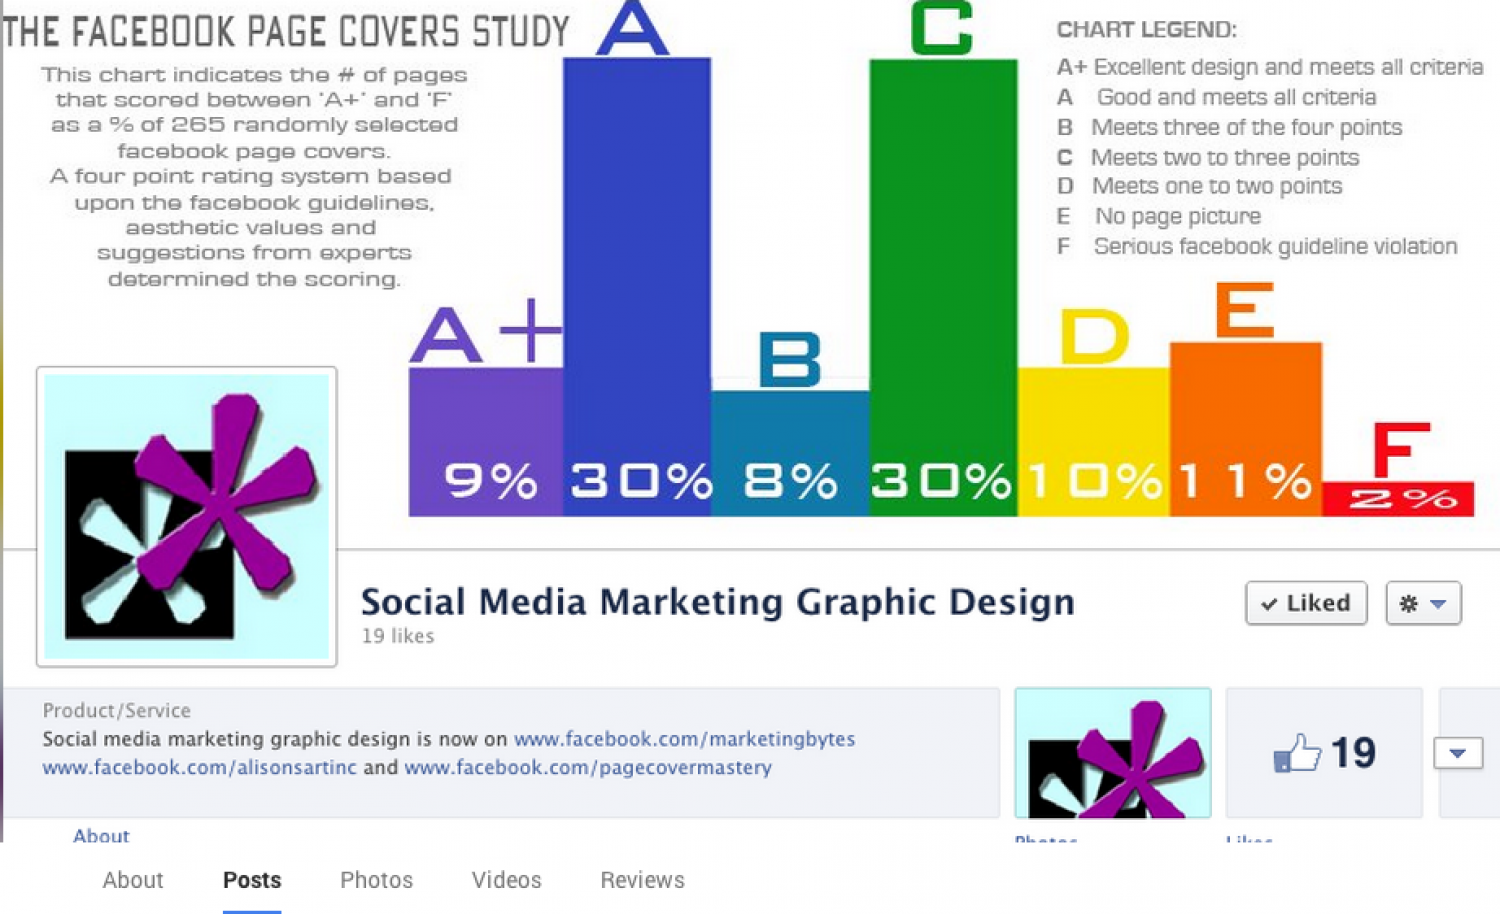 Social Media Marketing Graphic Design Facebook Page Covers Study Infographic